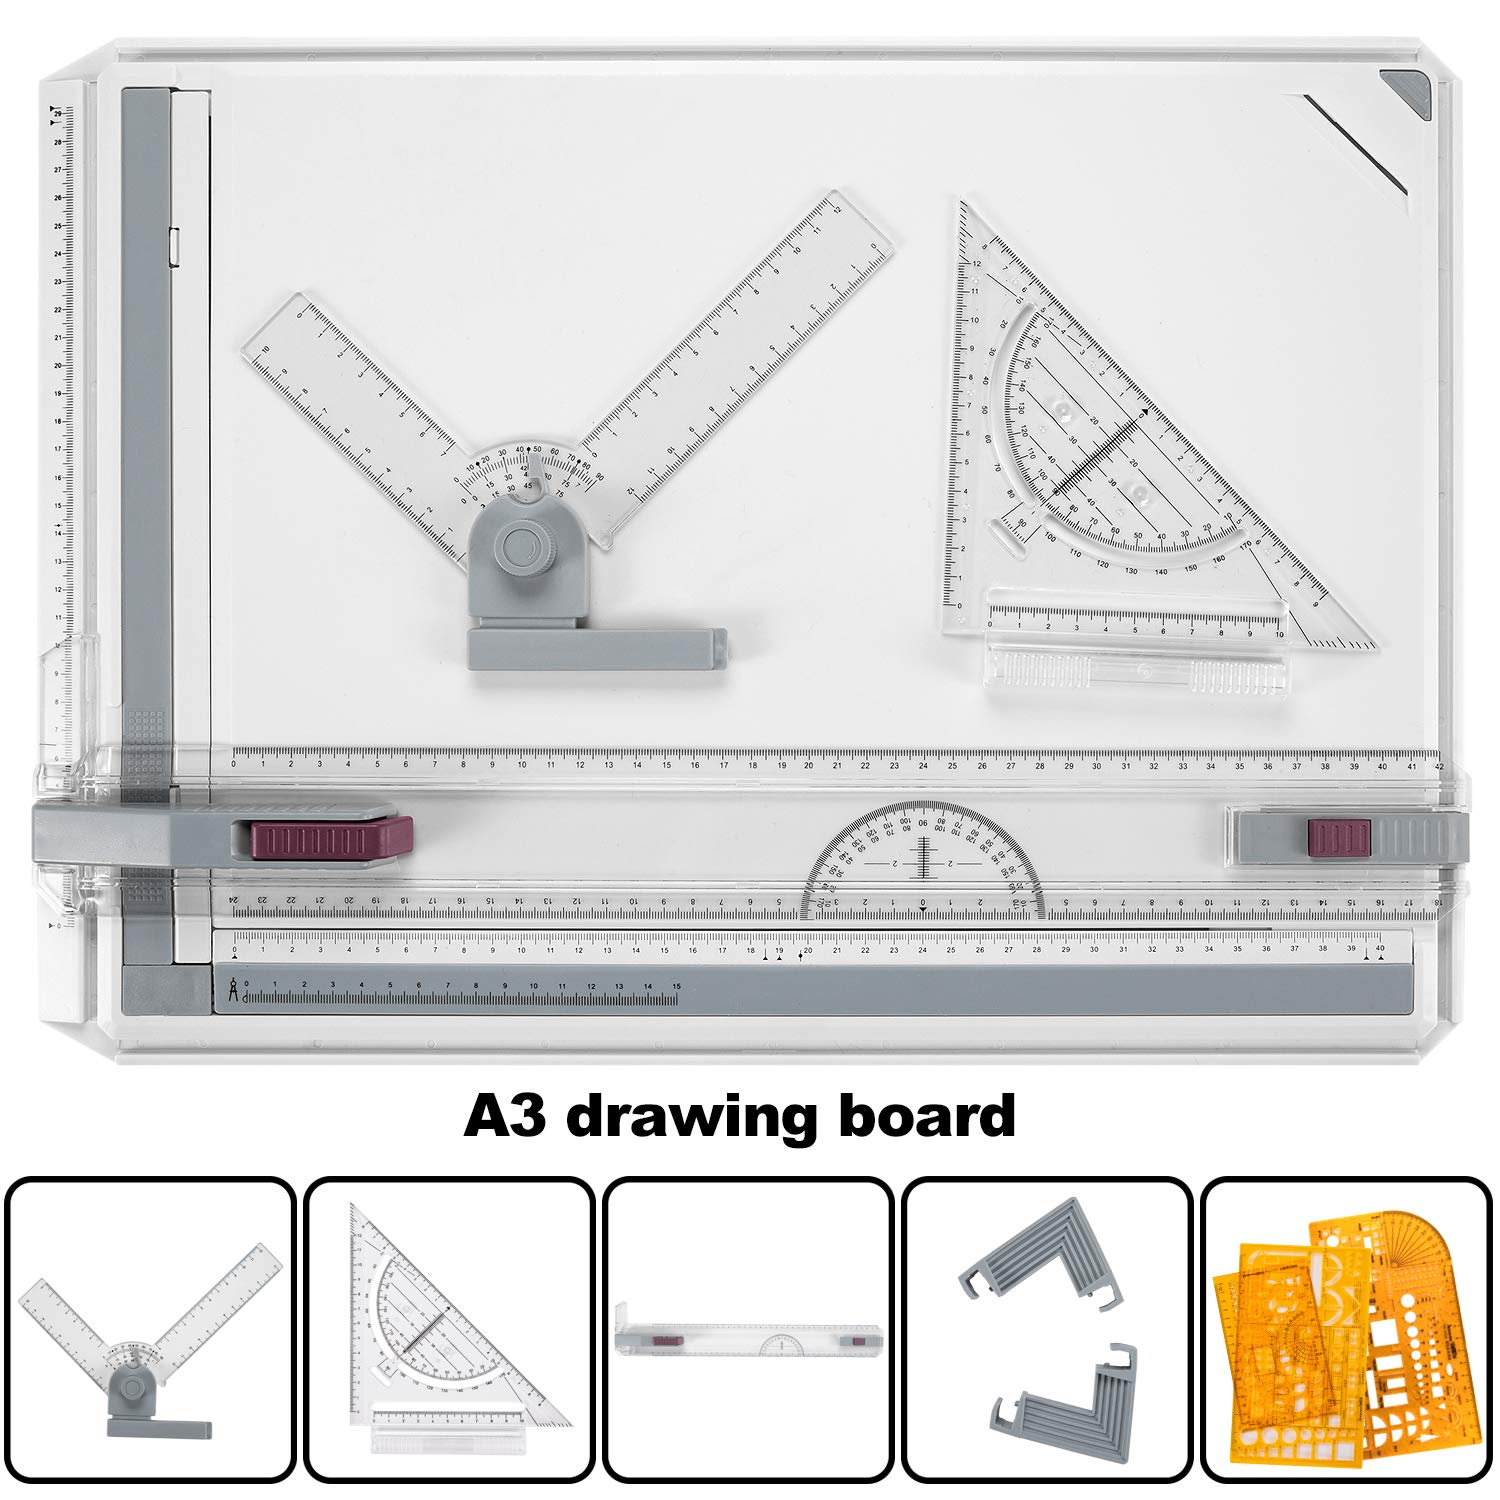 Drawing Board A3 Drafting Board Drawing Table Board Multi-Function Tool Set Graphic Architectural Adjustable Measuring System Angle for Construction Examination and Engineering Professional Templates by Aukiee